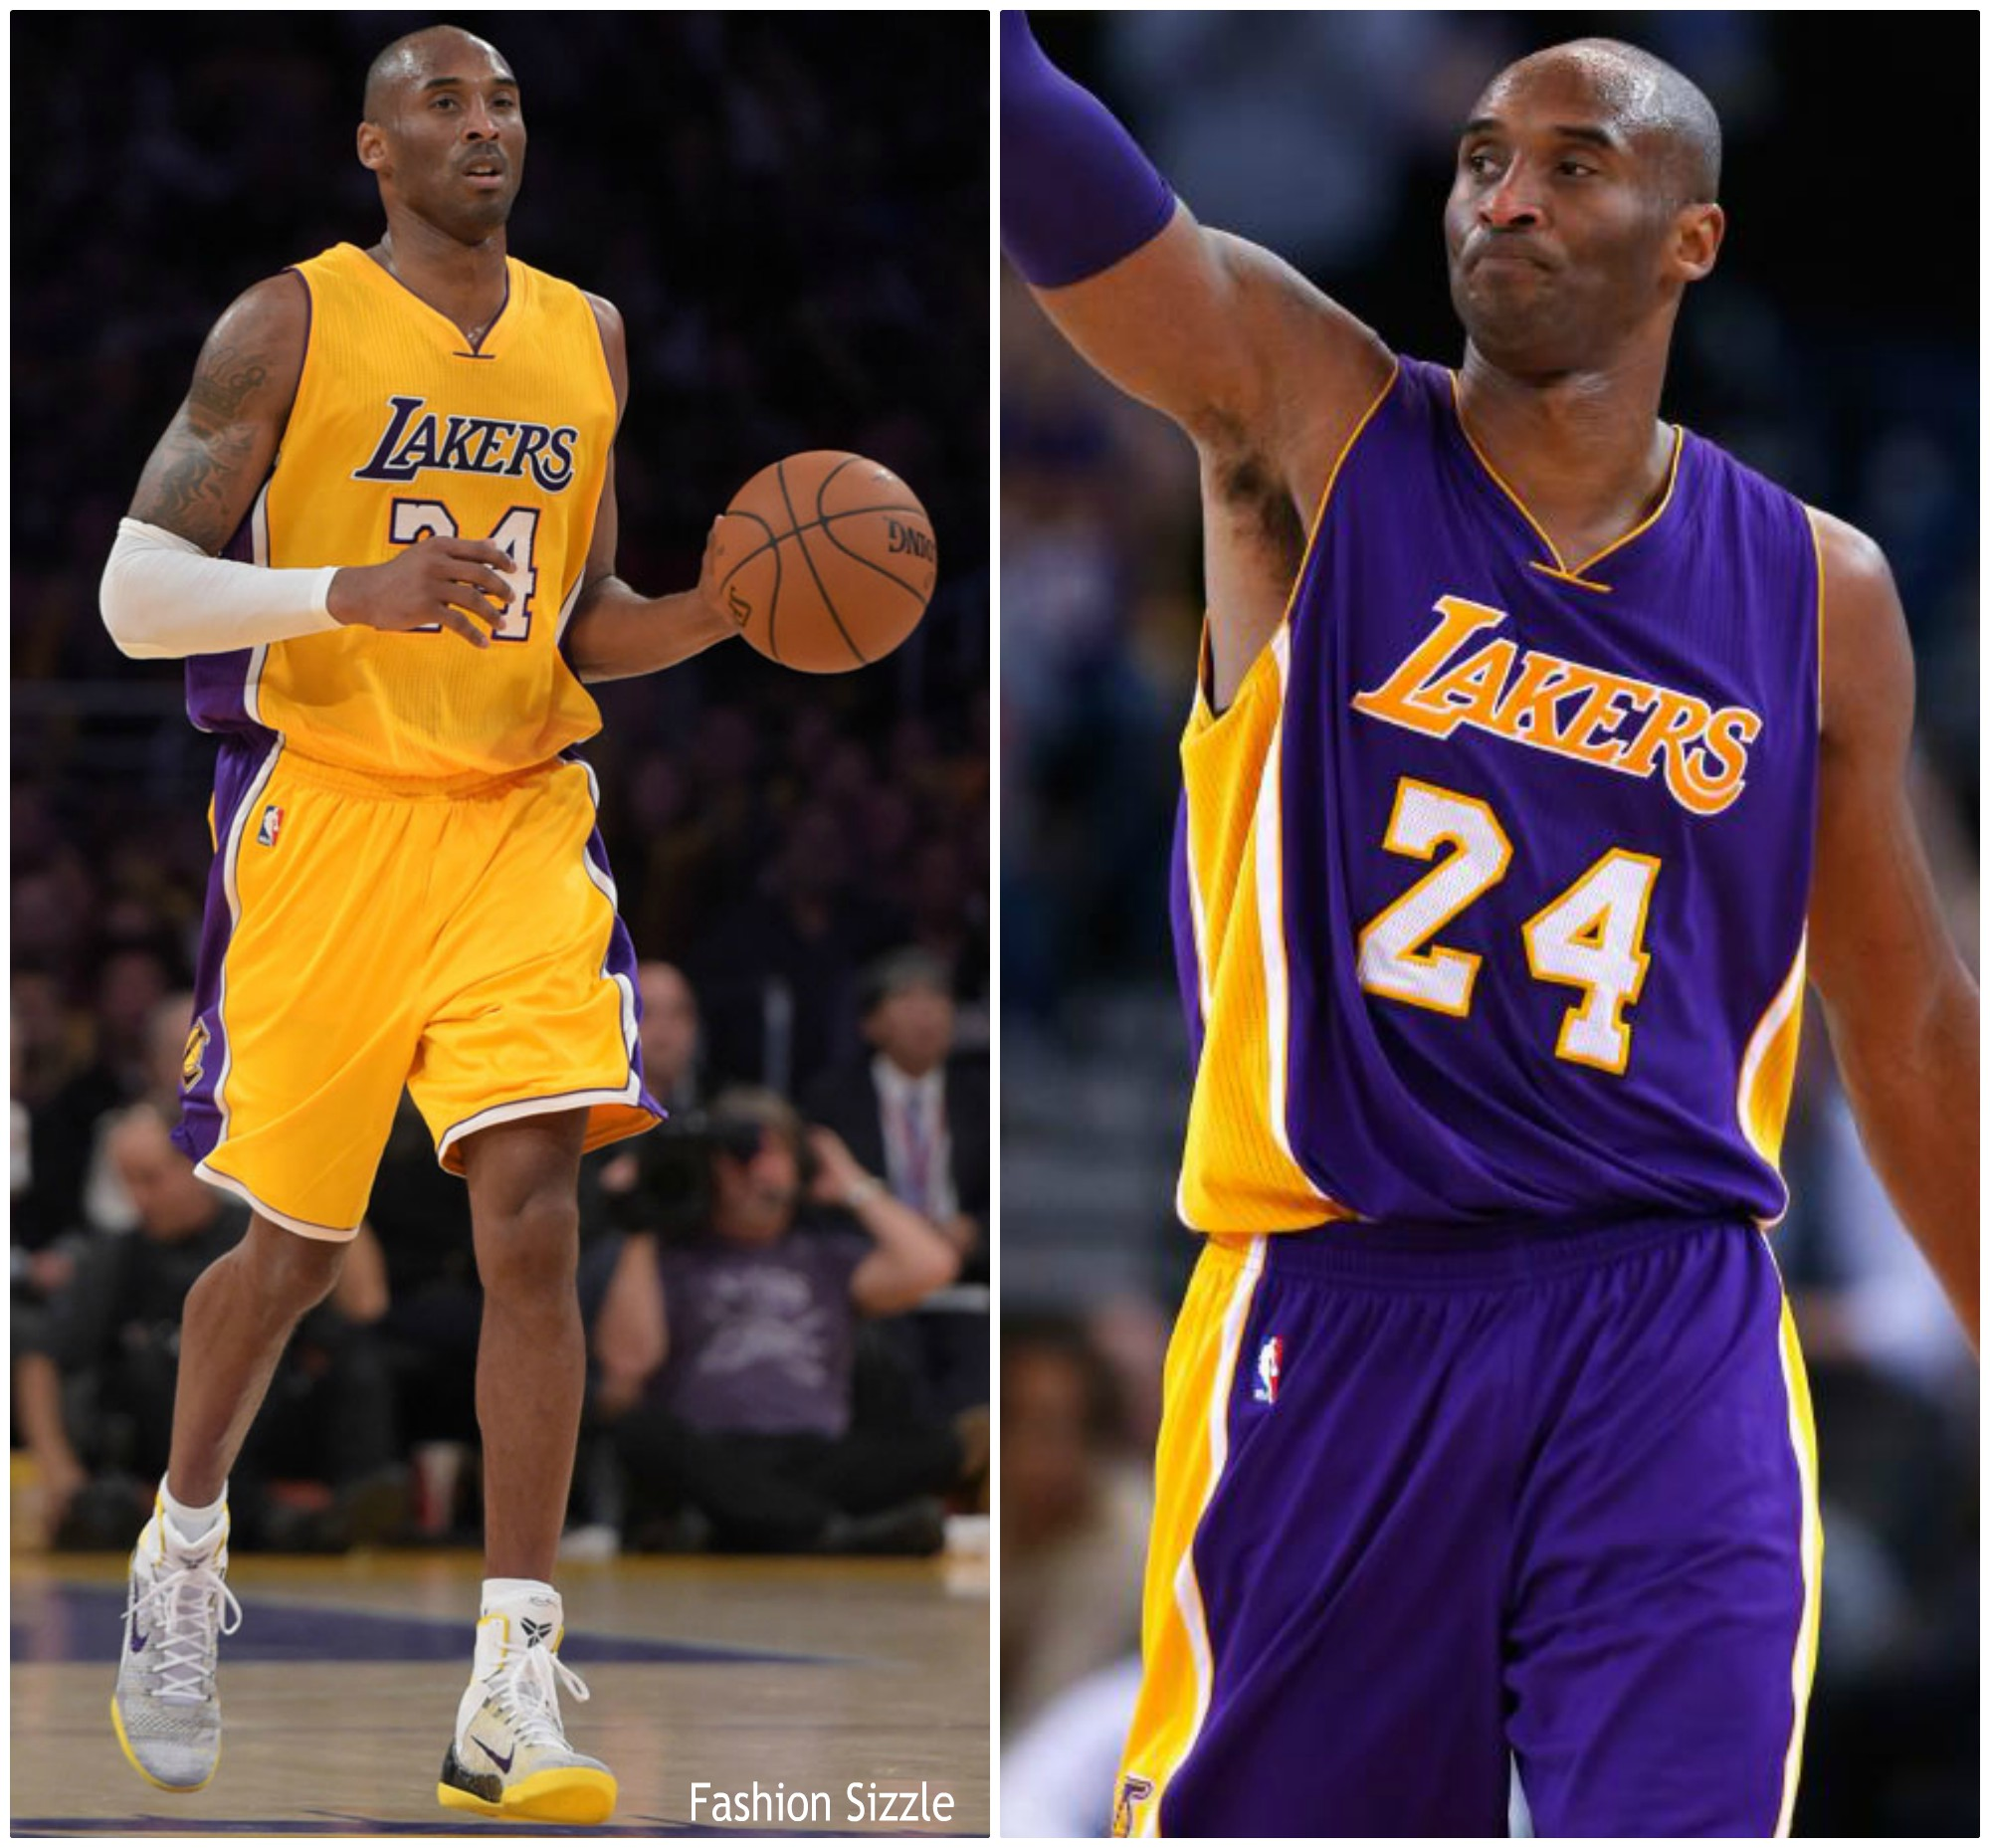 vanessa-bryant-reacts-to-kobe-bryants-hall-of-fame-inductiion